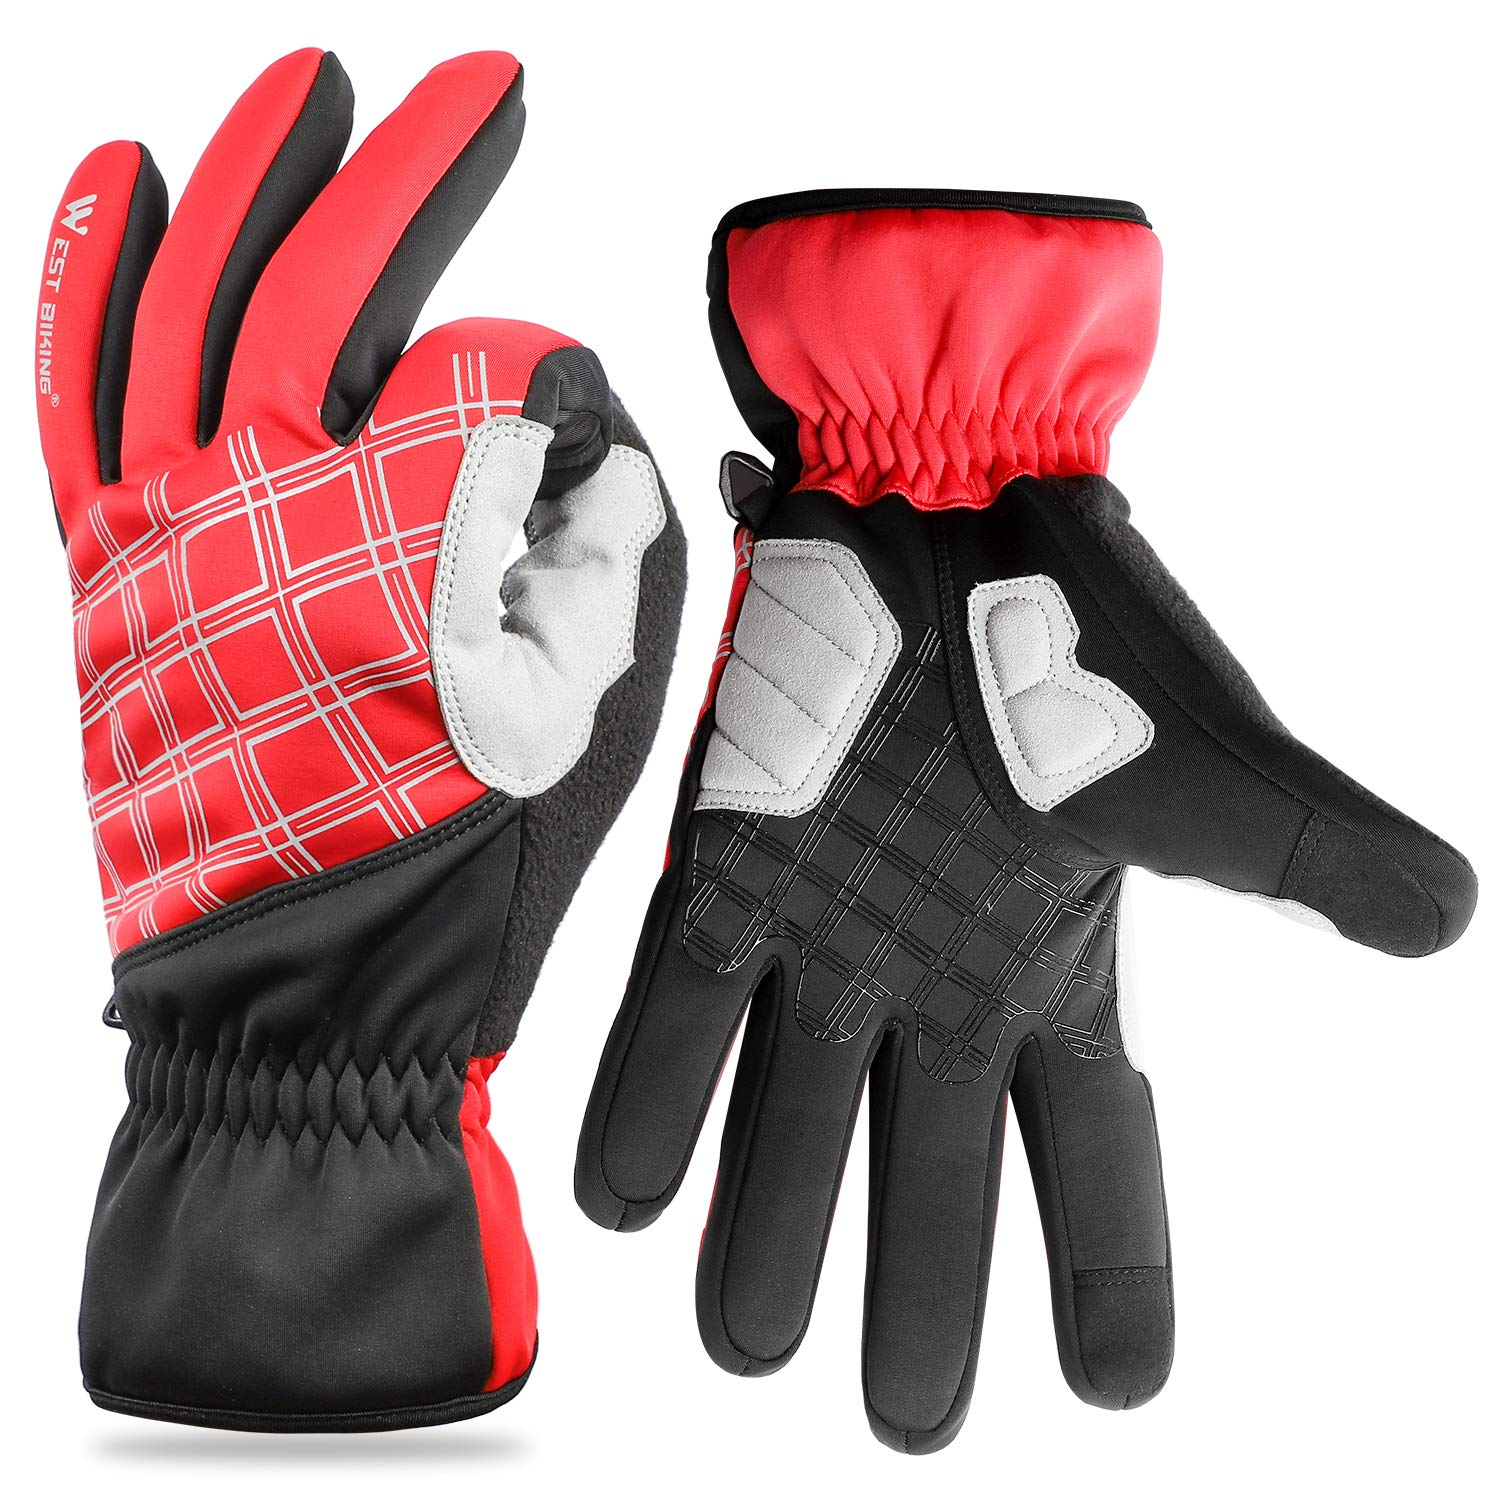 Winter Gloves, Cold Weather Windproof Waterproof Touchscreen Gloves for Men Women, Warm Thermal Gloves for Cycling, Running, Skiing (3 Colors)